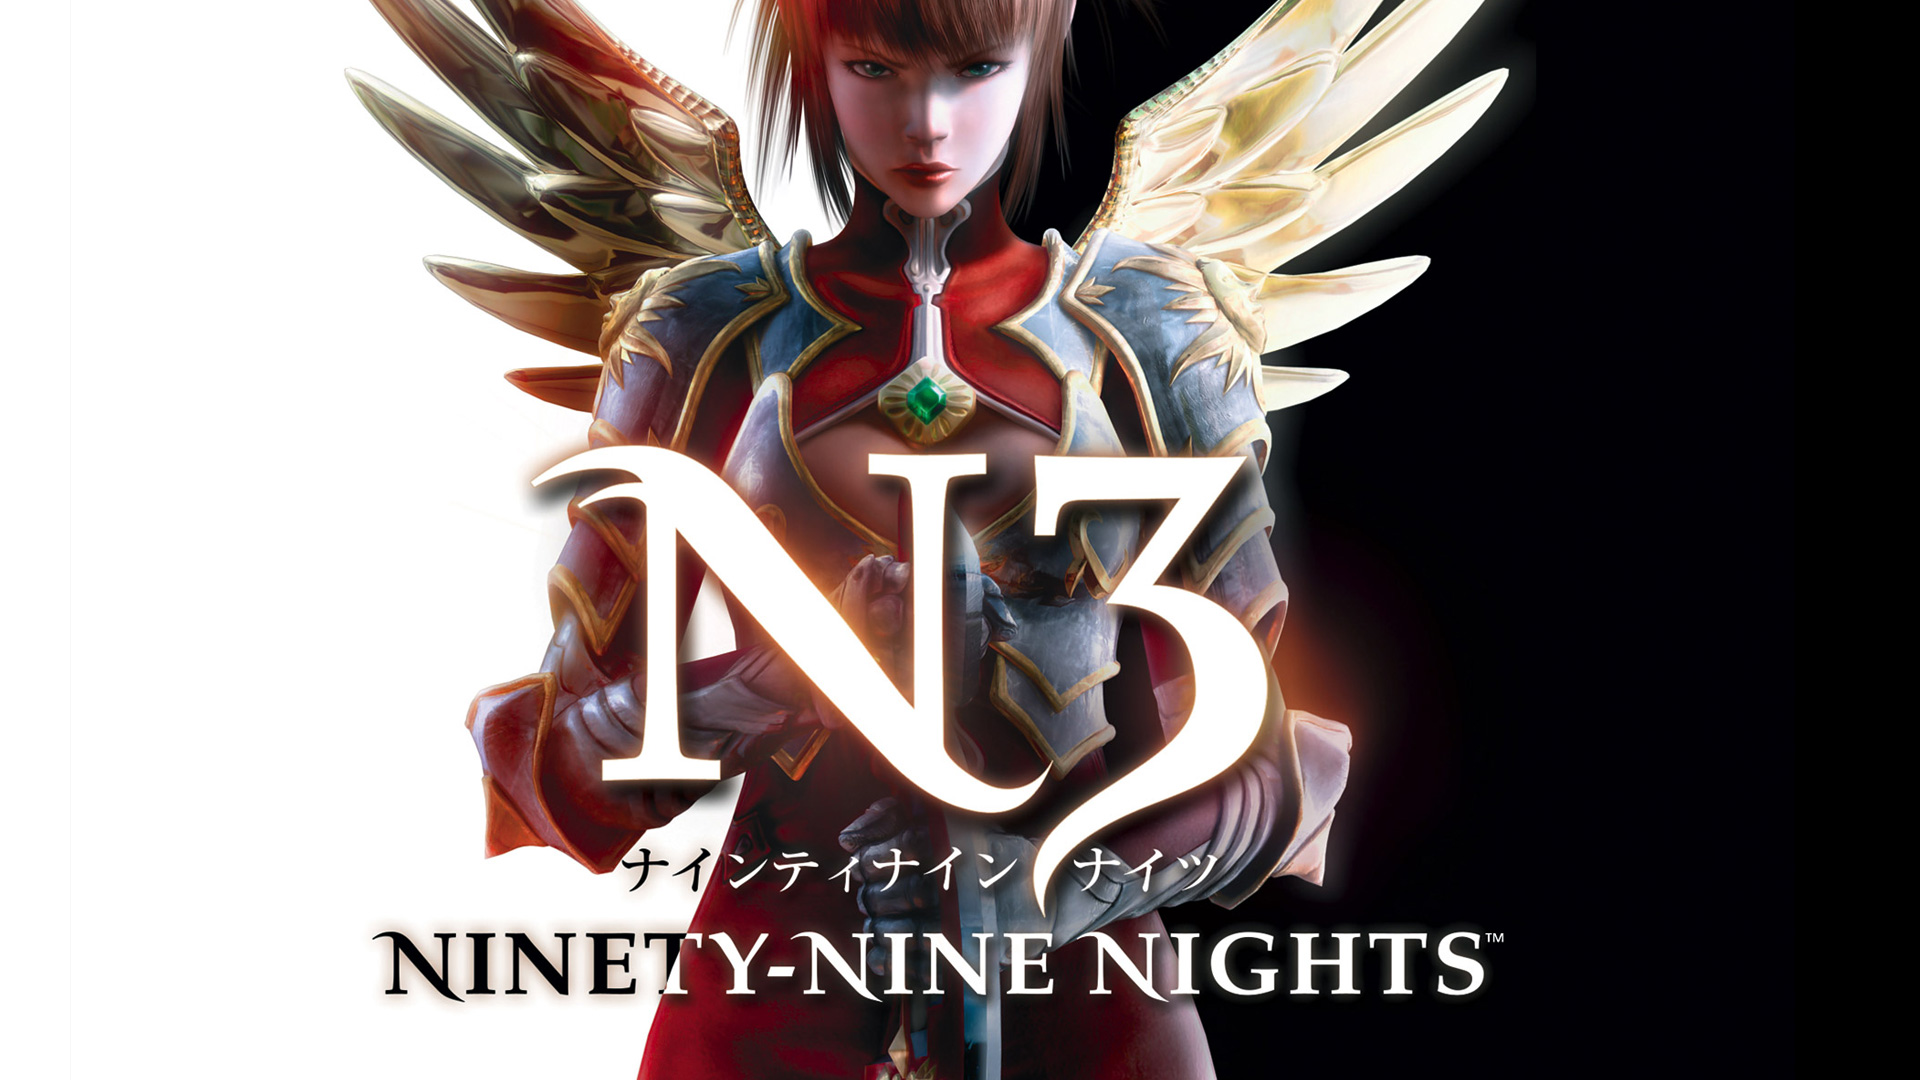 Ninety-Nine Nights Wallpaper in 1920x1080